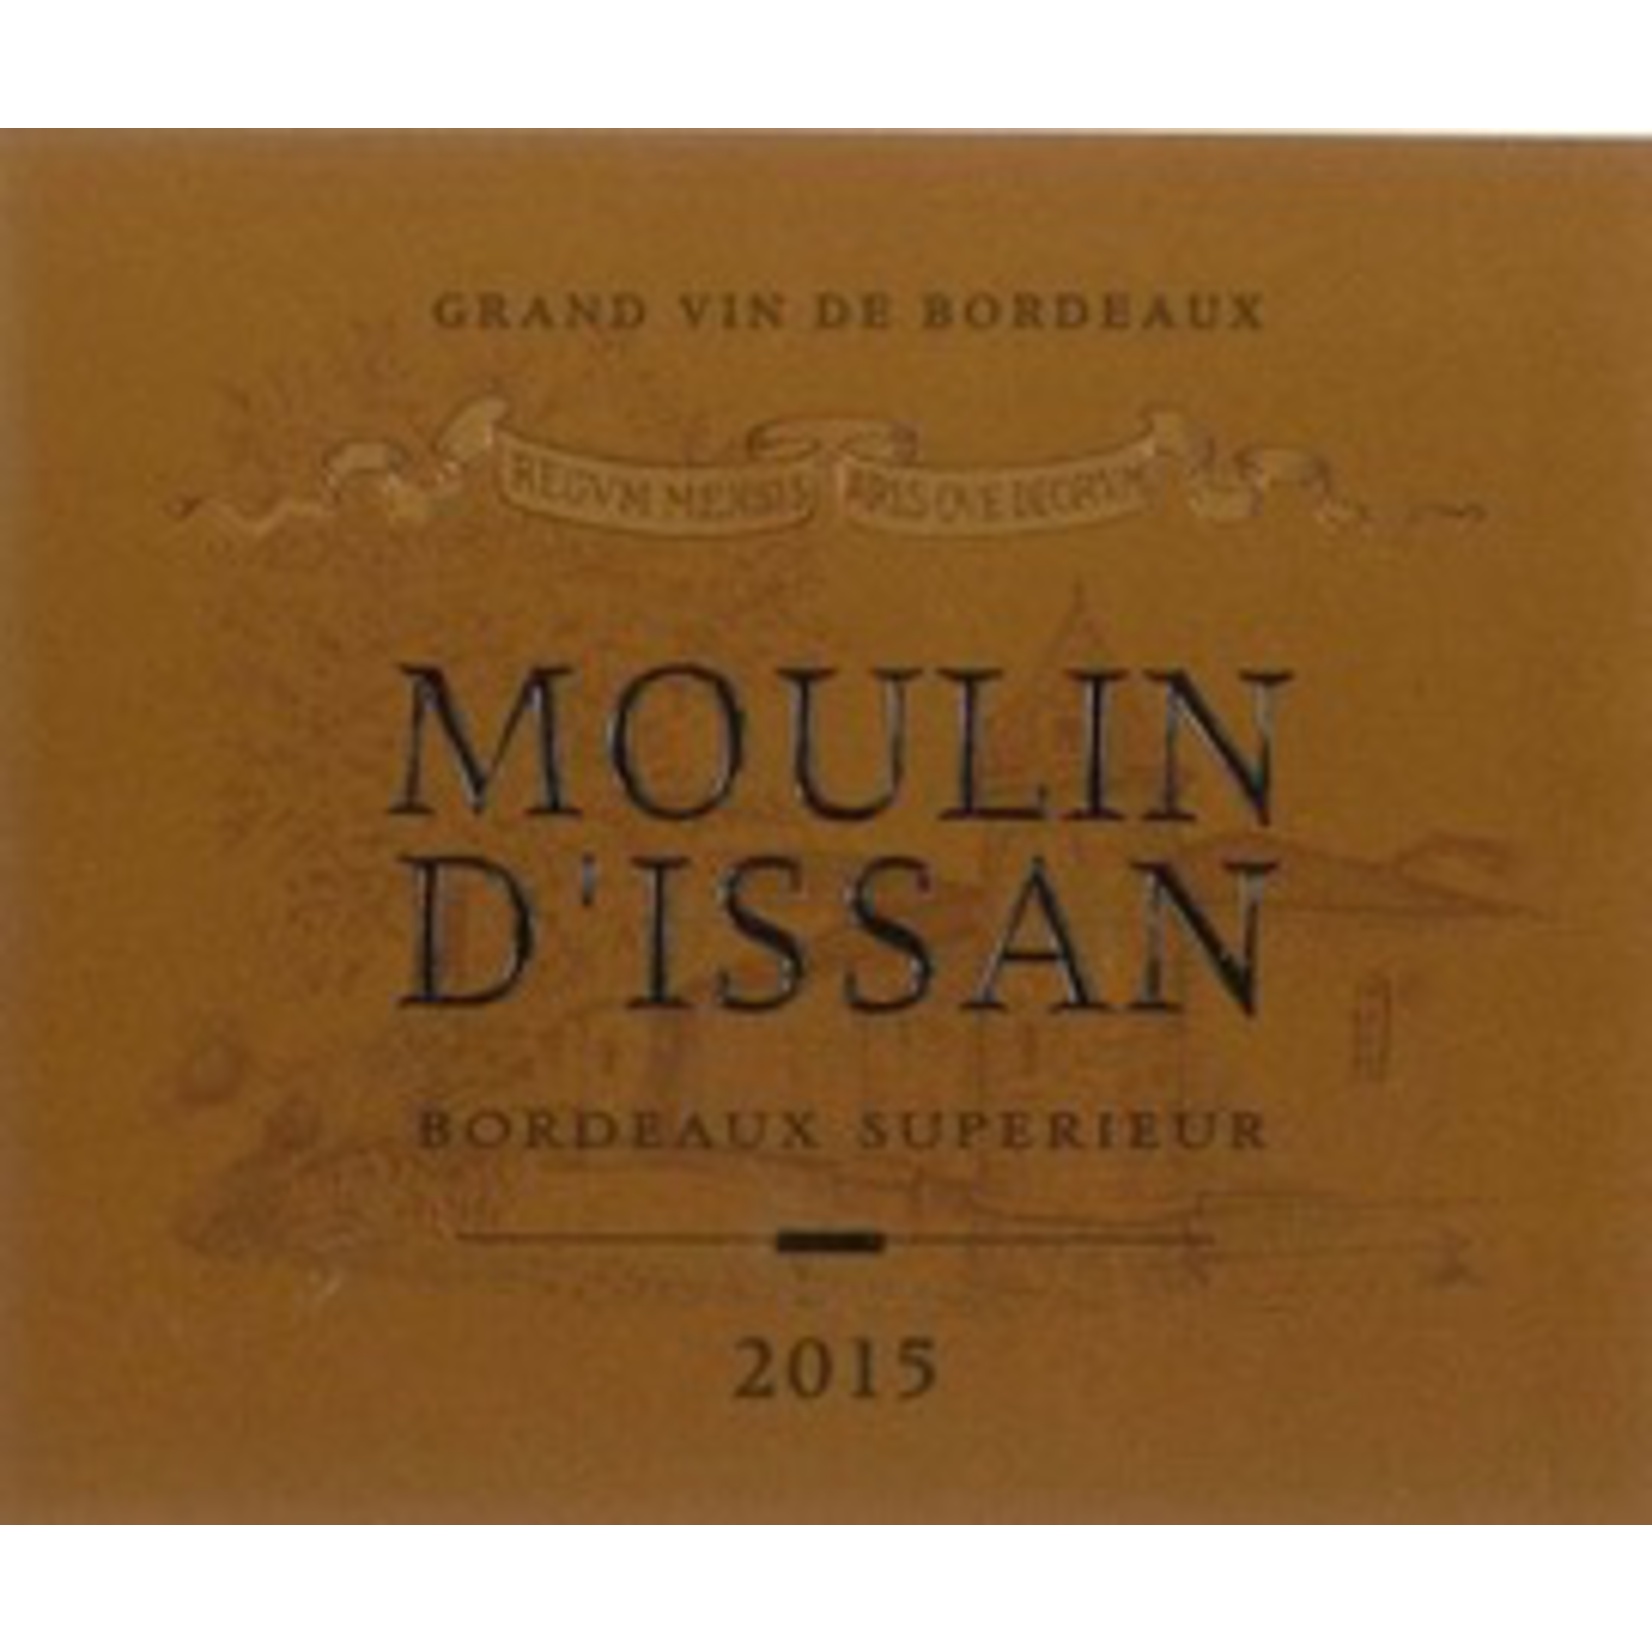 Moulin d'Issan 2018